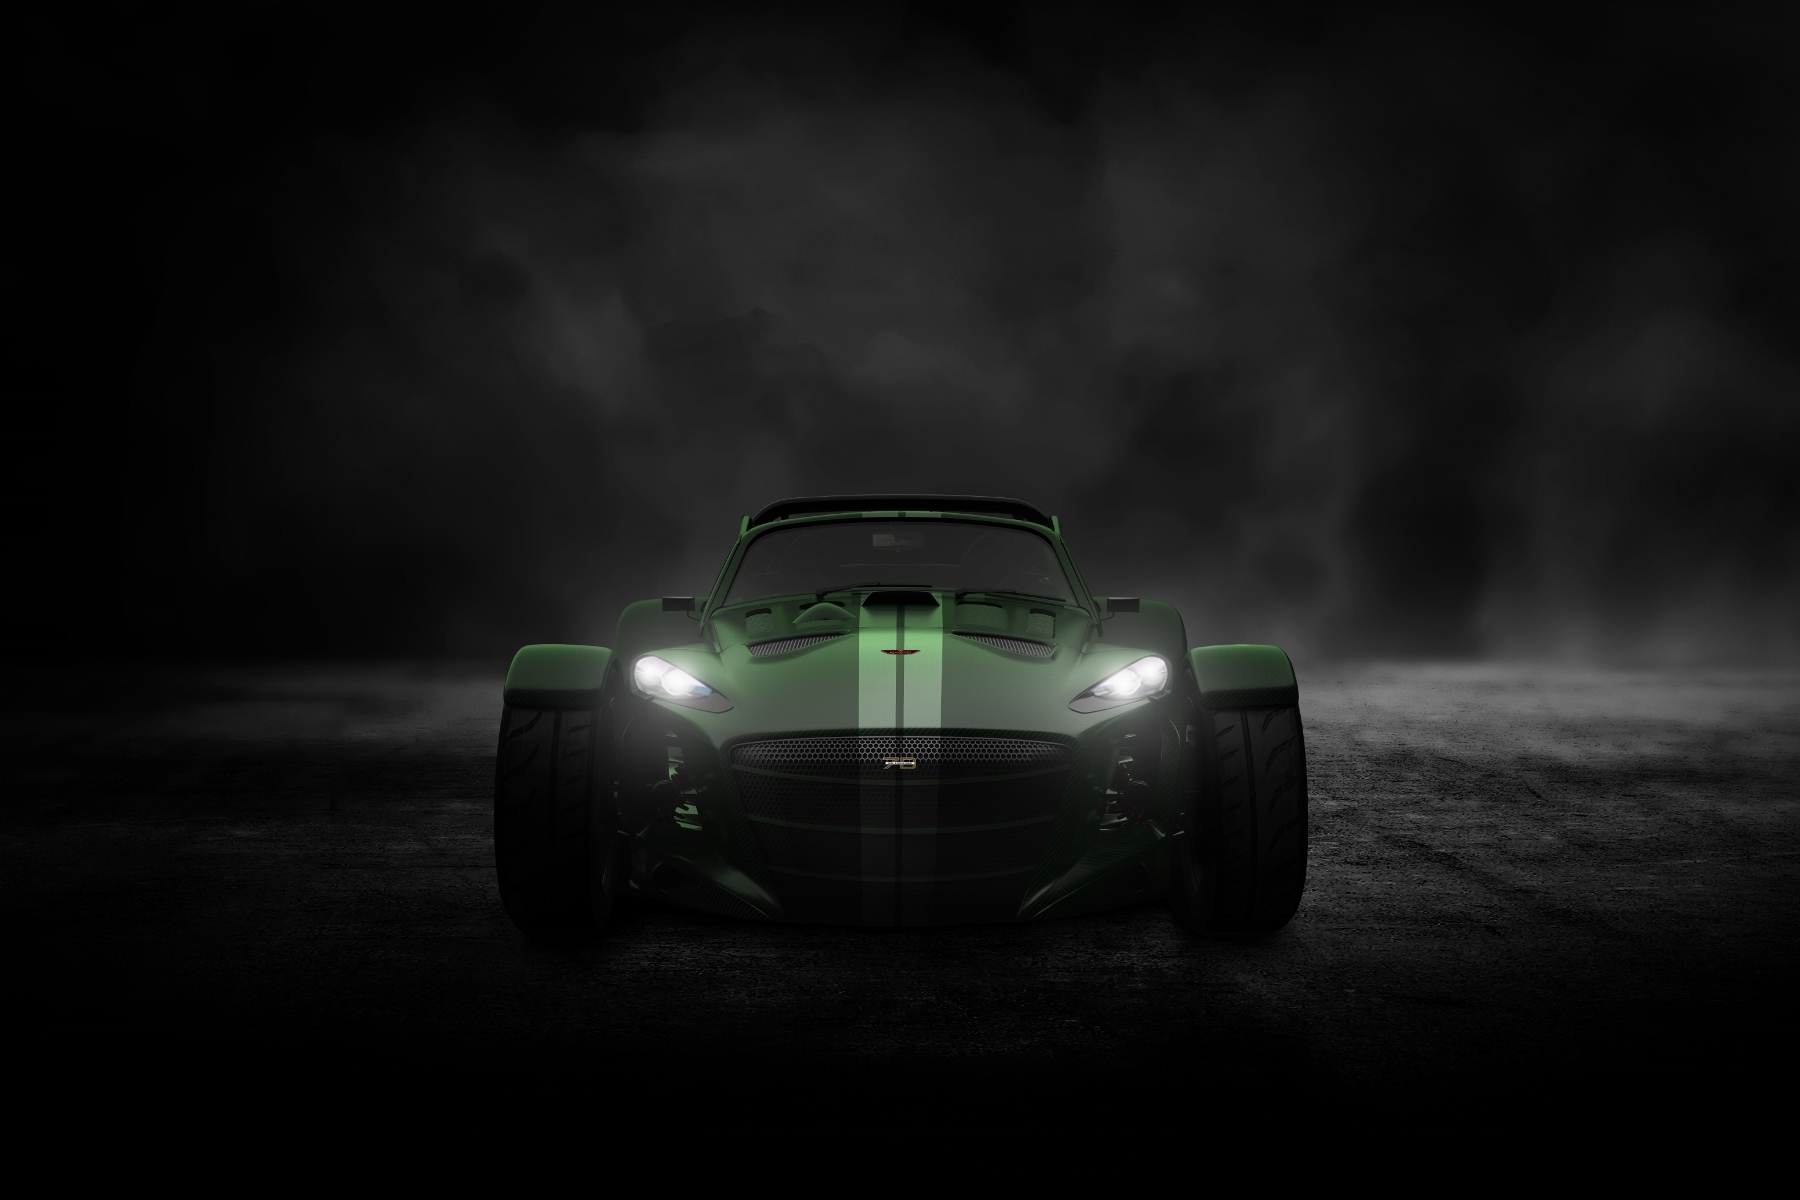 Donkervoort d8gto-jd70-10 (2)